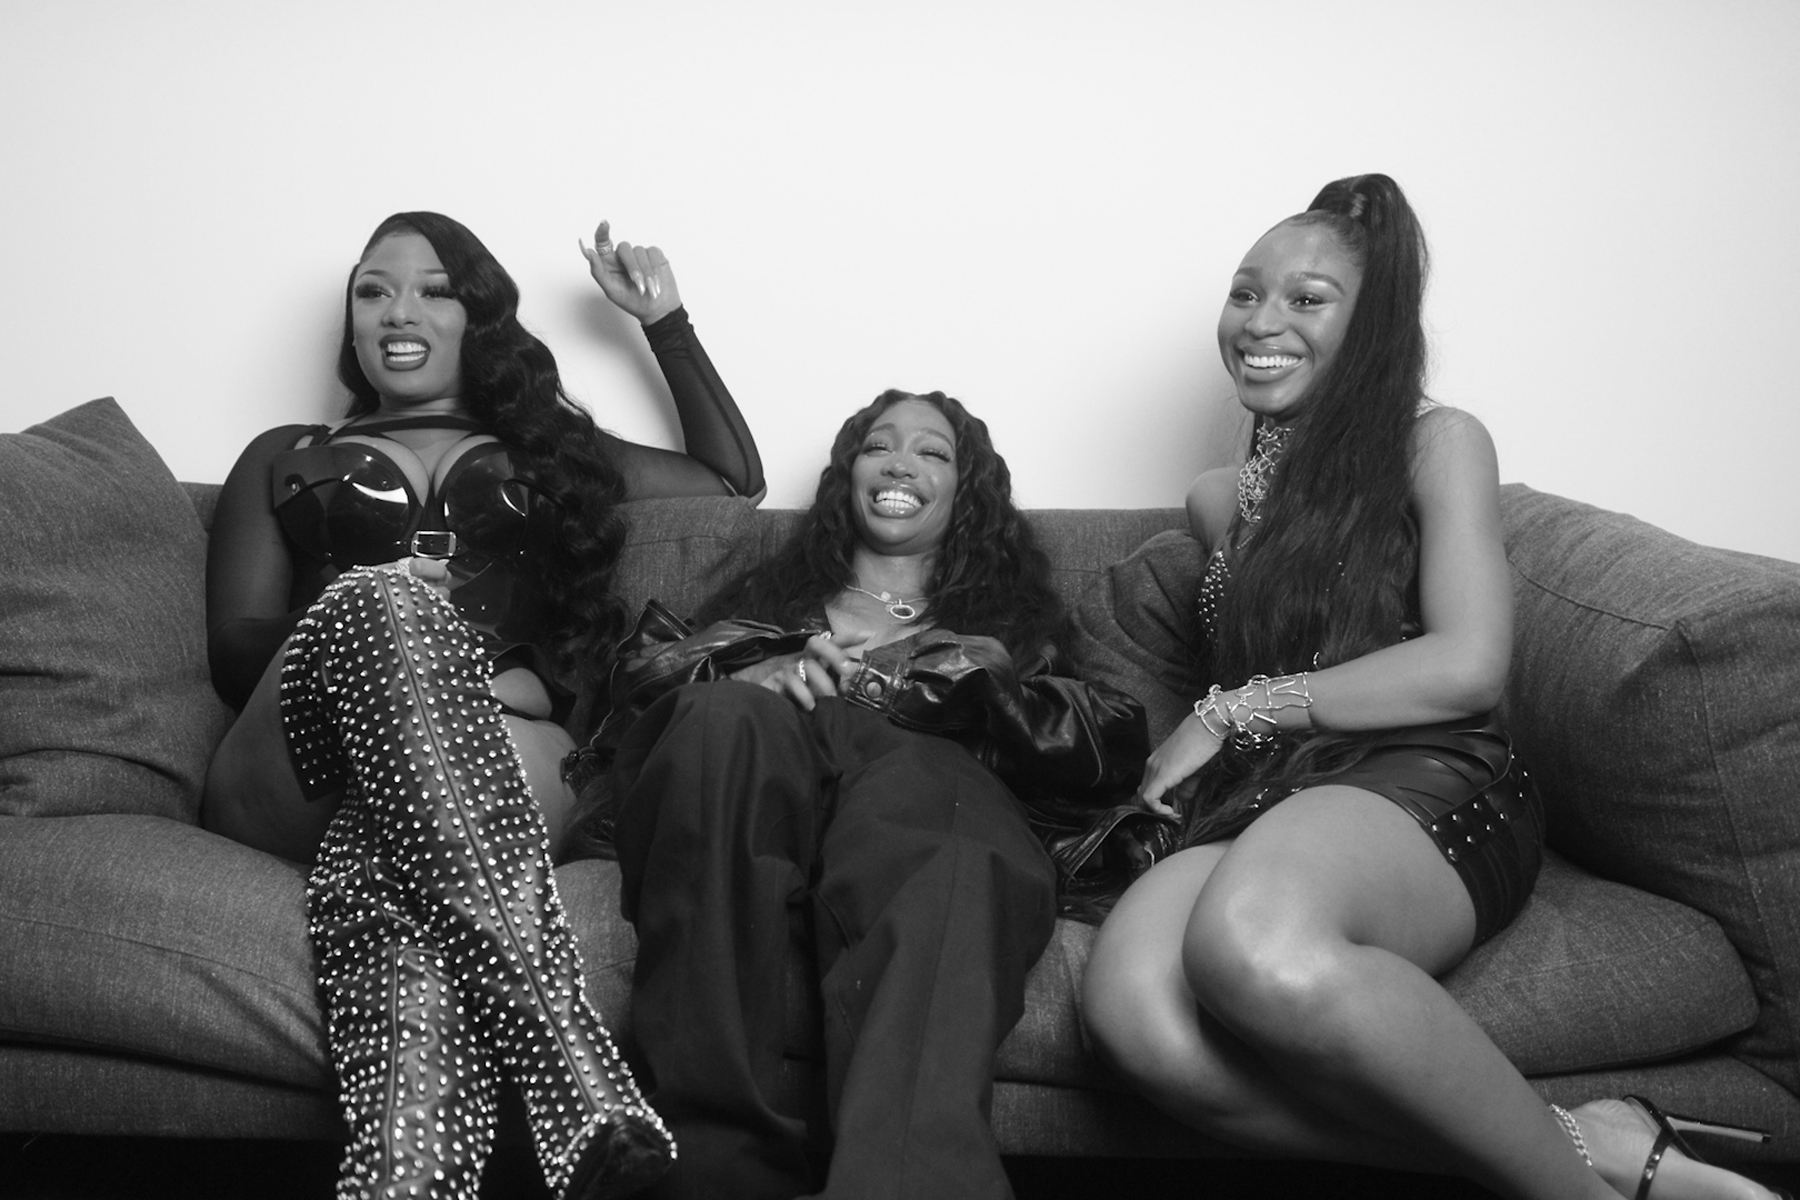 'The First Time': SZA, Megan Thee Stallion, and Normani